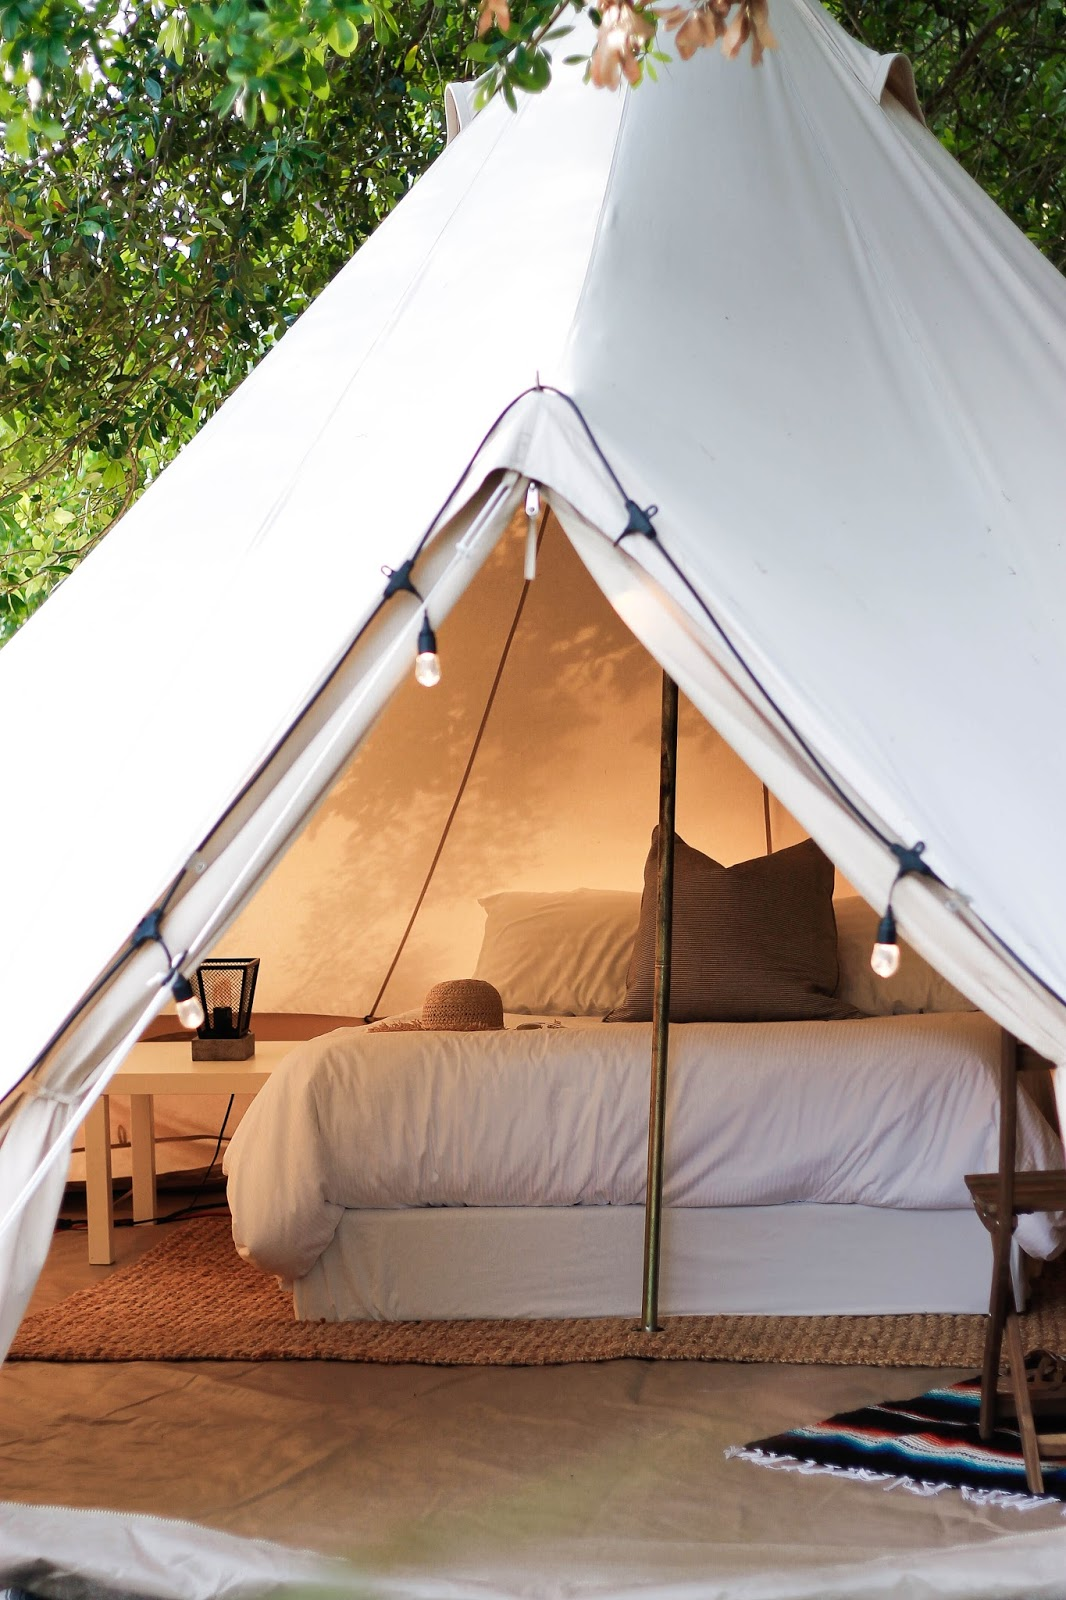 Our tent (and all their tents) features a comfy Queen sized bed bed side tables/l&s and rugs. On top of all the stylish amenities ... & What Itu0027s Like To Go Glamping: Tent Tour... | The Dainty Darling